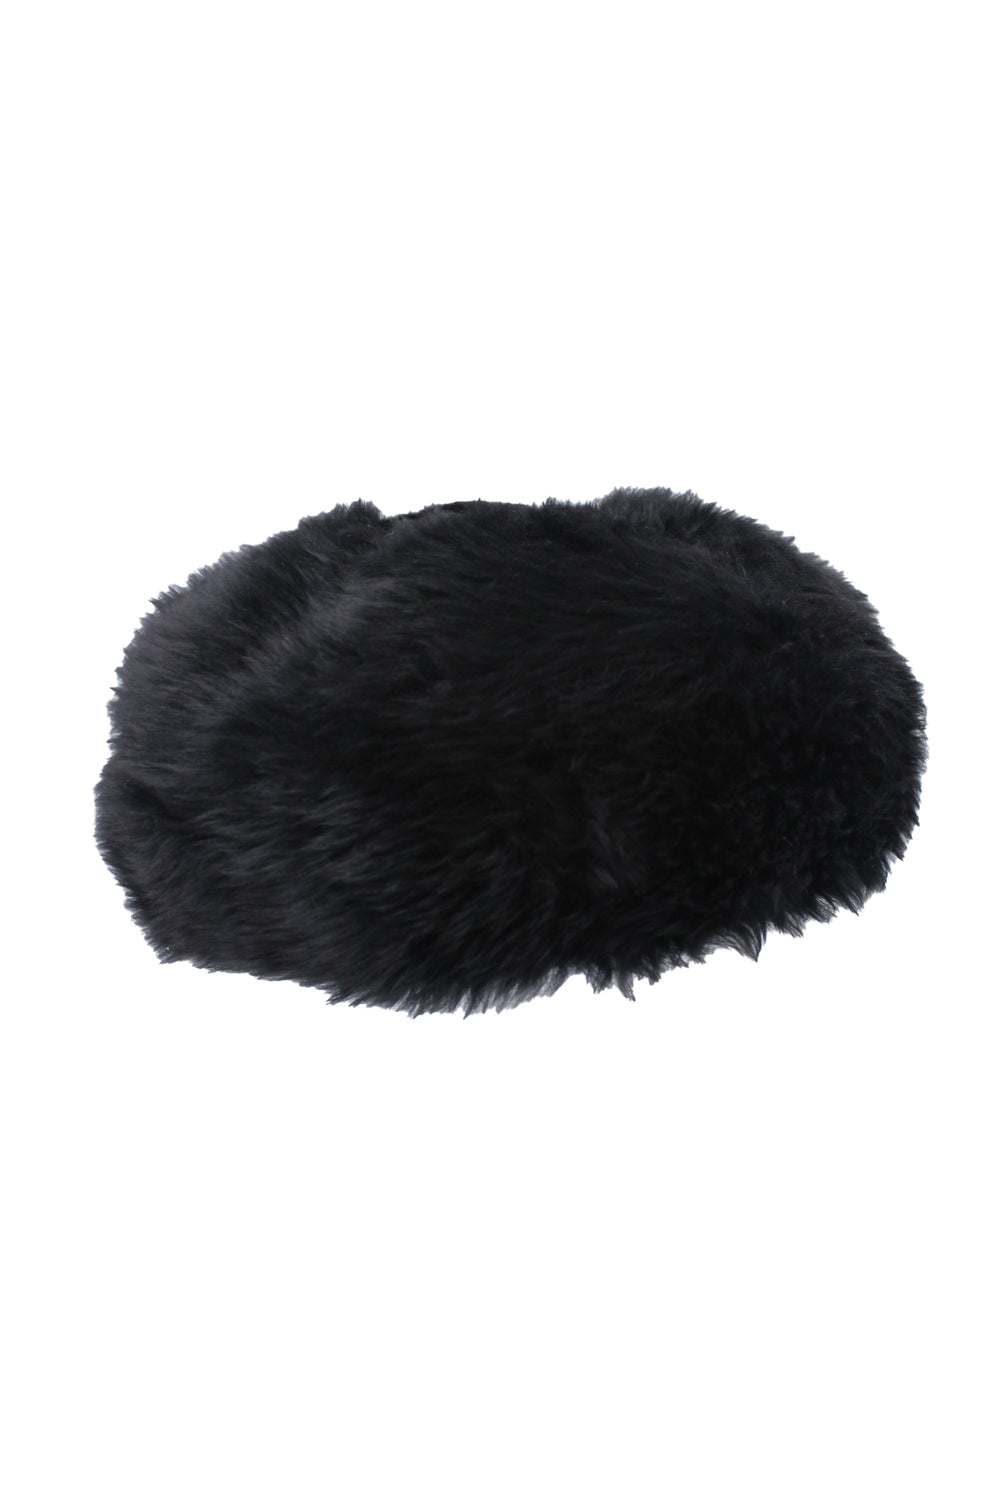 vintage black shearling fur beret hat. featuring lambs shearling outer, and leather lining.